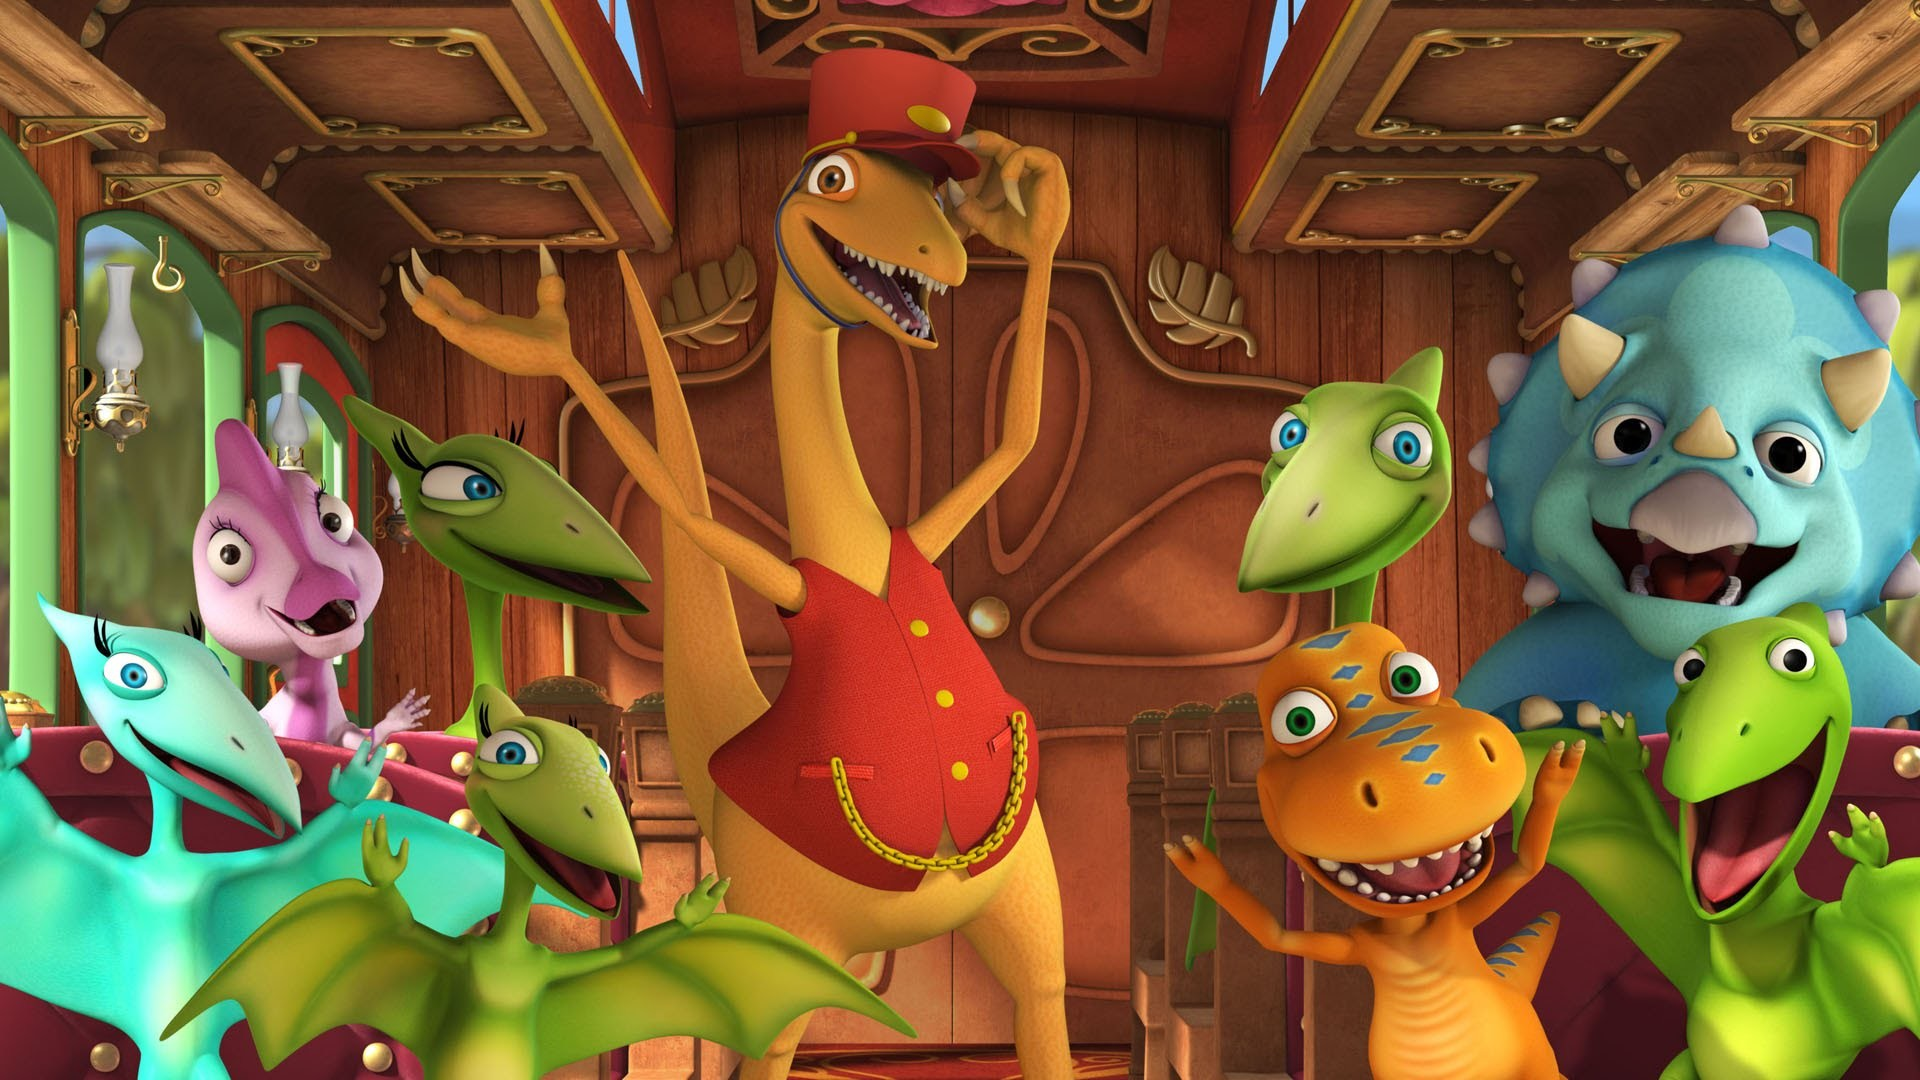 1920x1080 Pbs Kids images Dinosaur Train HD wallpaper and background photos